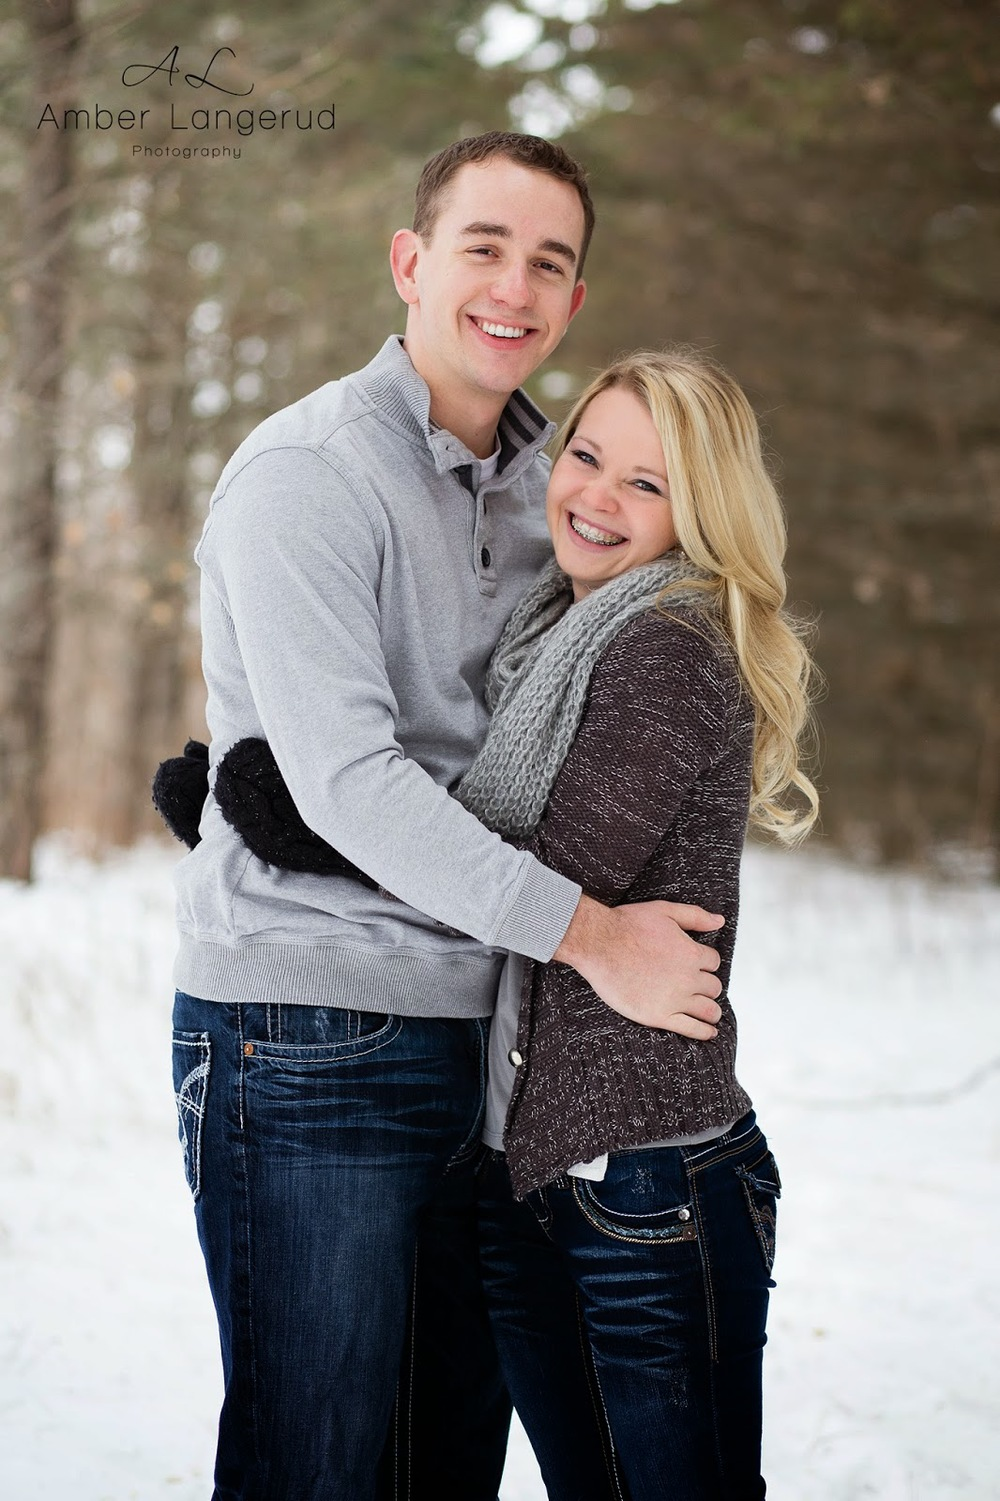 Winter Couple Portraits | Detroit Lakes, Fargo/Moorhead Area Photographer | Amber Langerud Photography